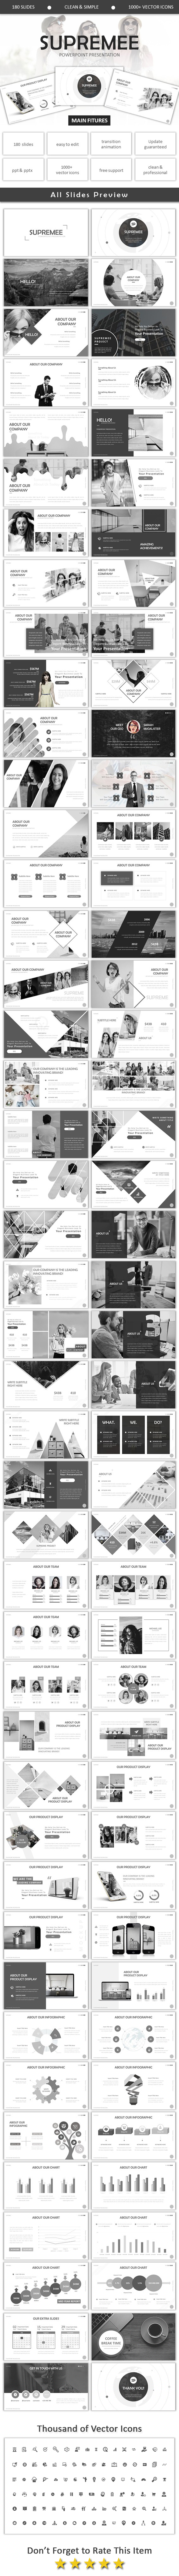 GraphicRiver Supremee Powerpoint 20647408